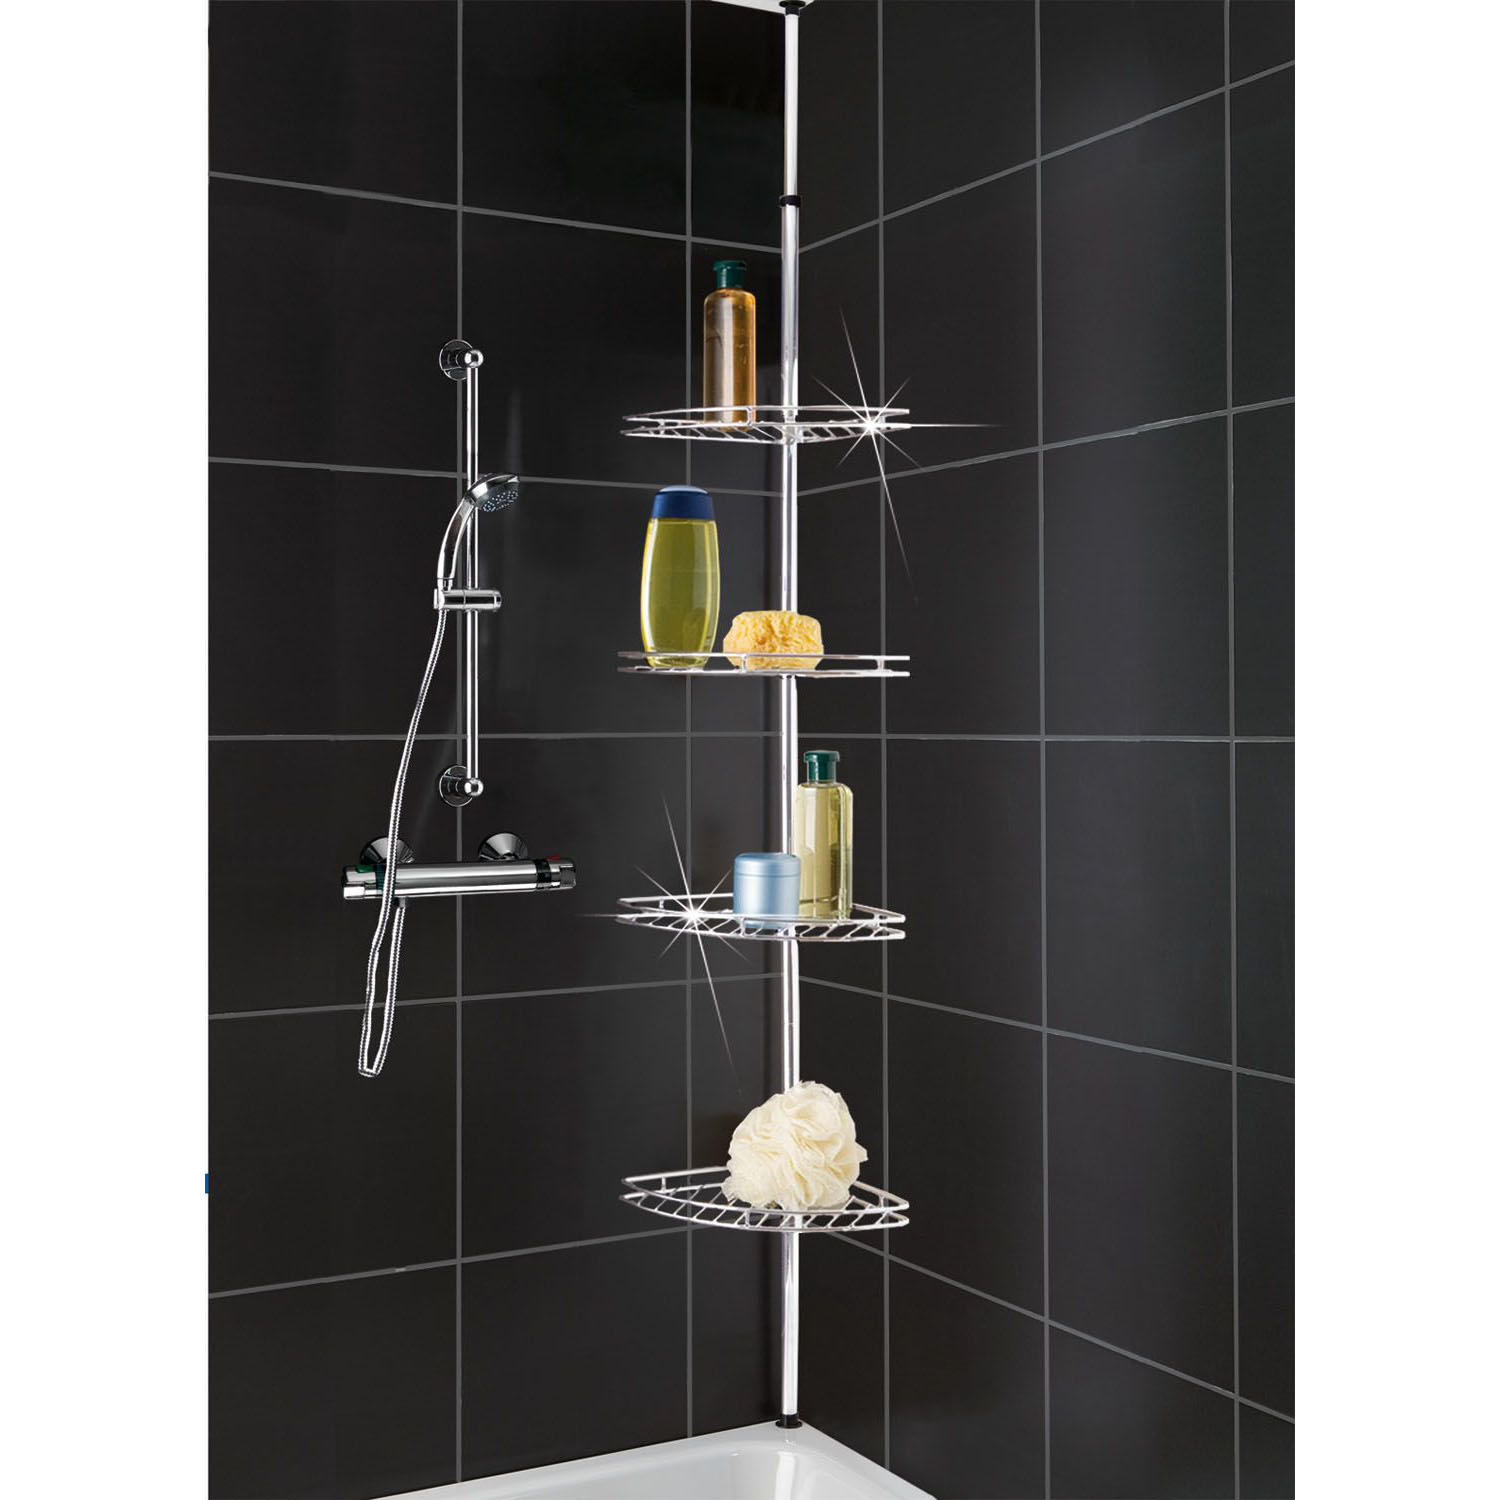 Metal corner shower bathroom basket caddy shelf telescopic - Etagere d angle pour salle de bain ...